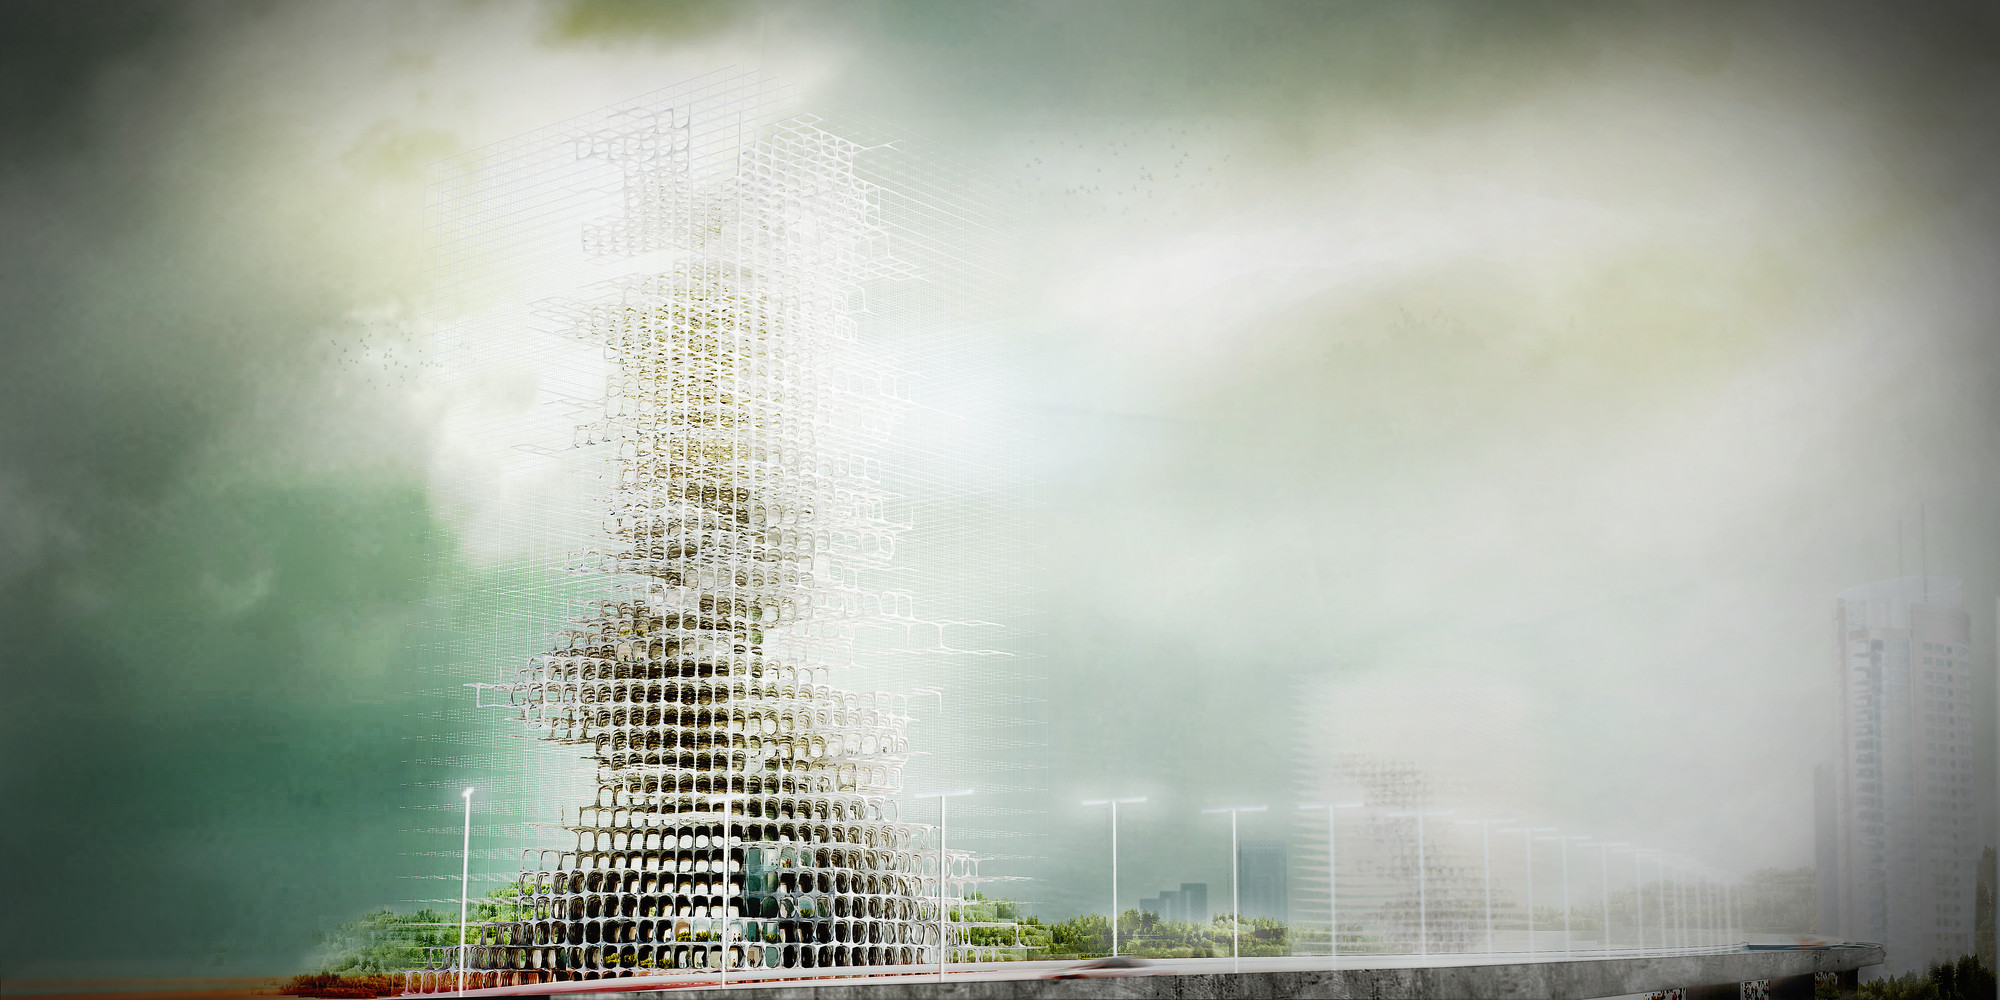 eVolo Skyscraper Competition 2014: A Skyscraper That Grows, Exterior Rendering. Image © YuHao Liu & Rui Wu